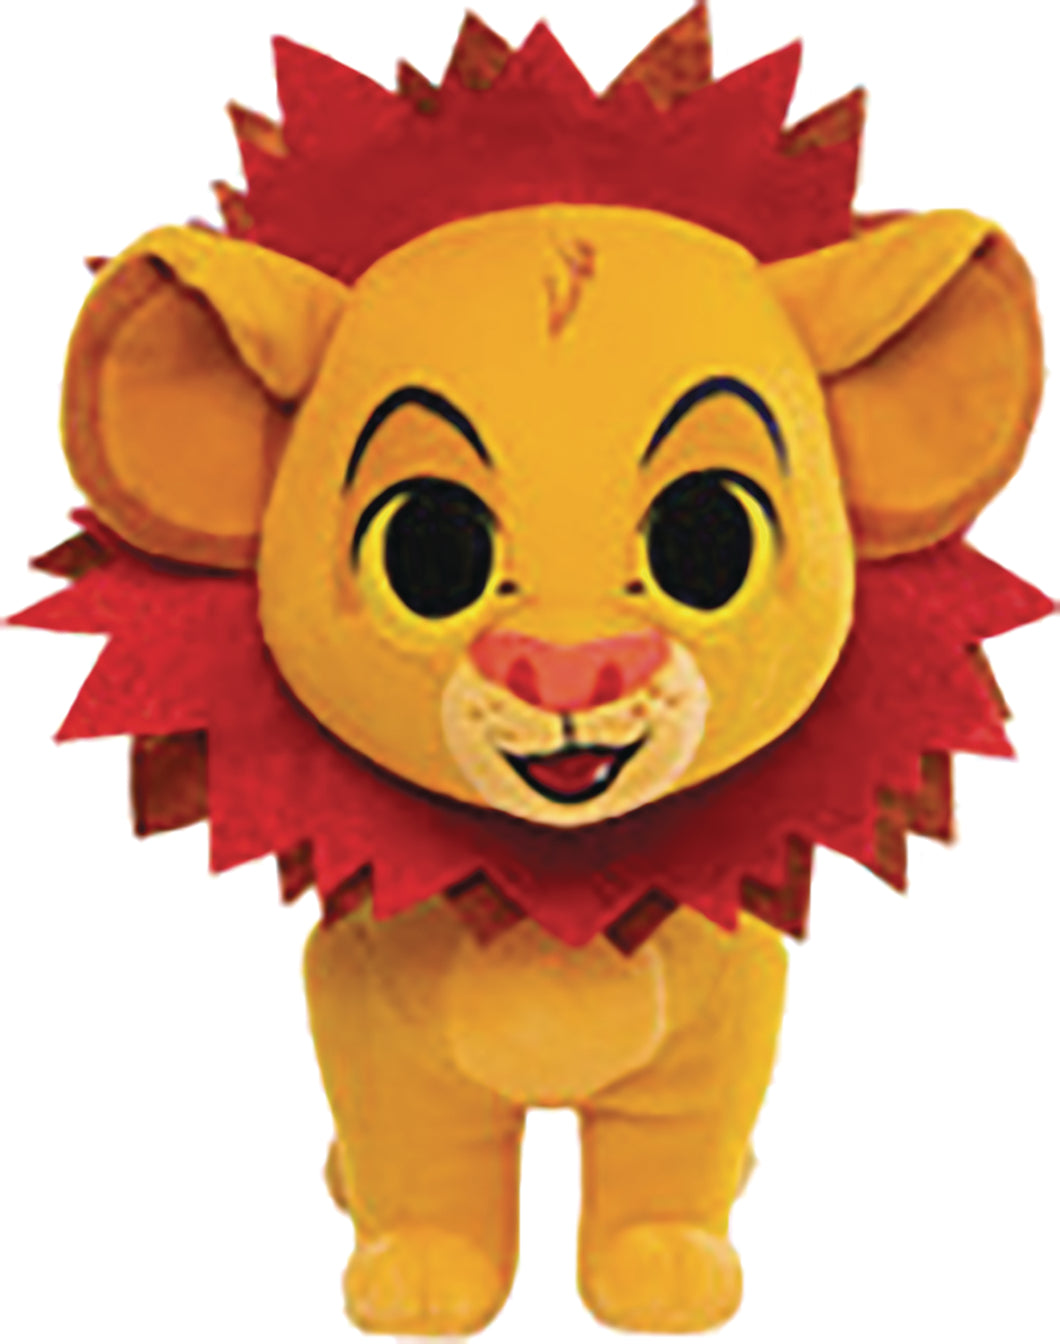 LION KING SIMBA W/ LEAF MANE PLUSH (C: 1-1-1)